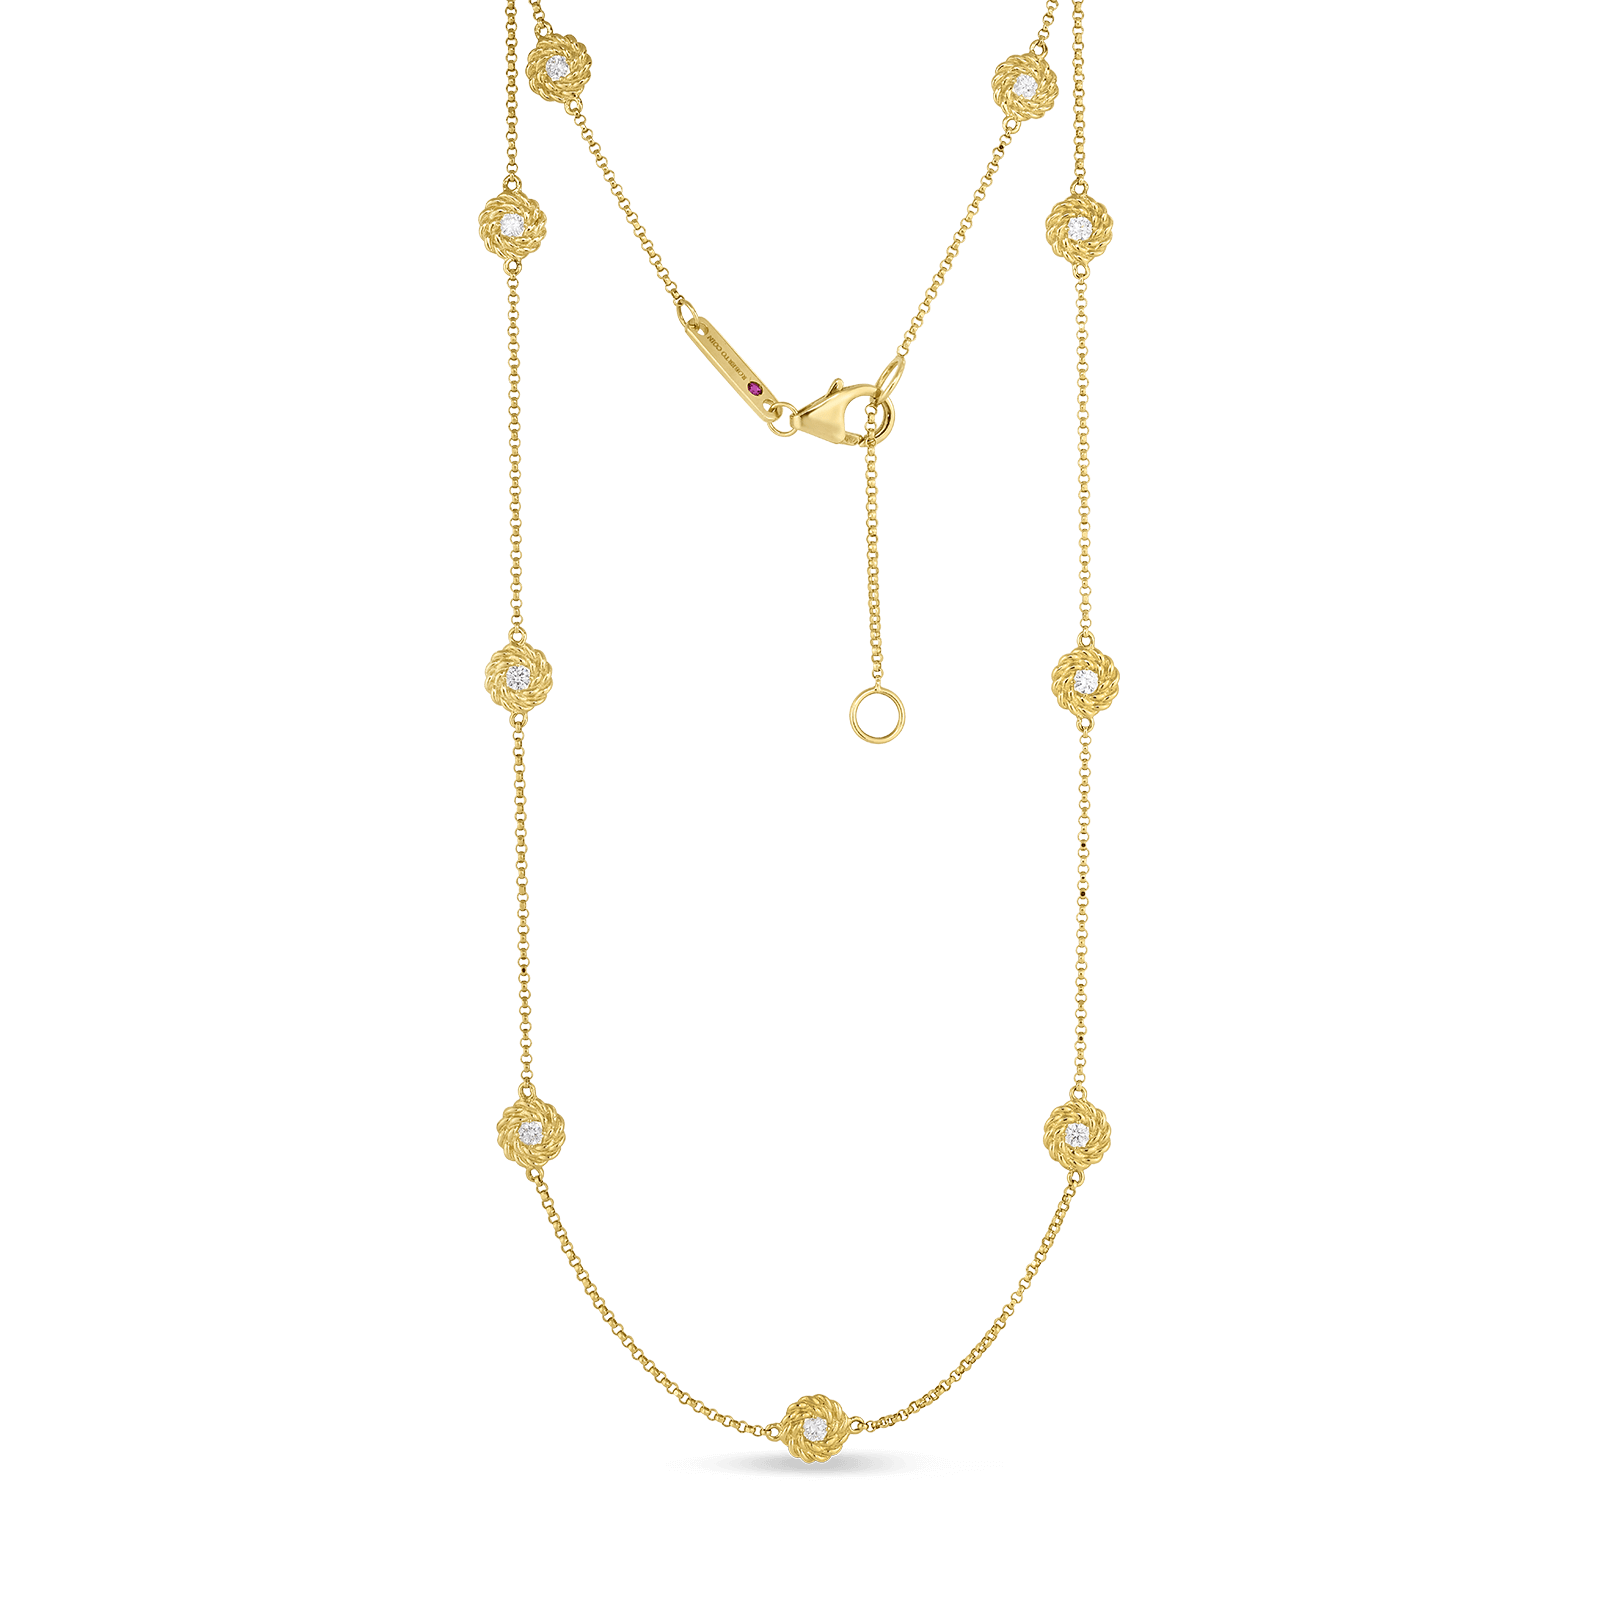 Roberto-Coin-18k-yellow-gold-Necklace-with-Diamond-Stations-7771330AYCHXalt